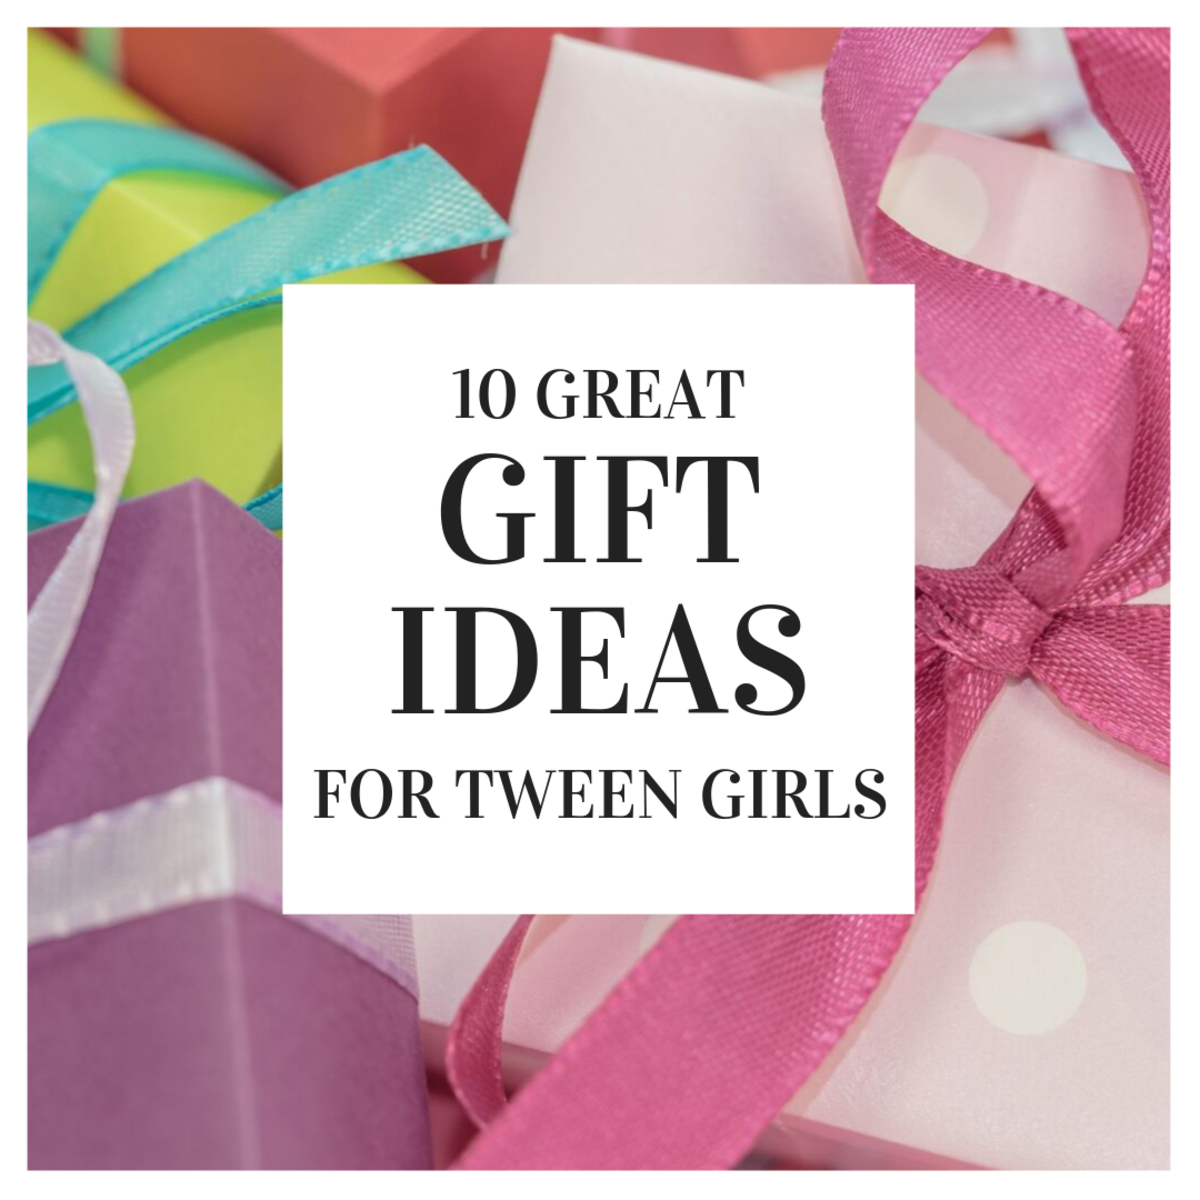 Picking the right gift for a tweenager can be a real challenge. Here are a few ideas to help you on your search.